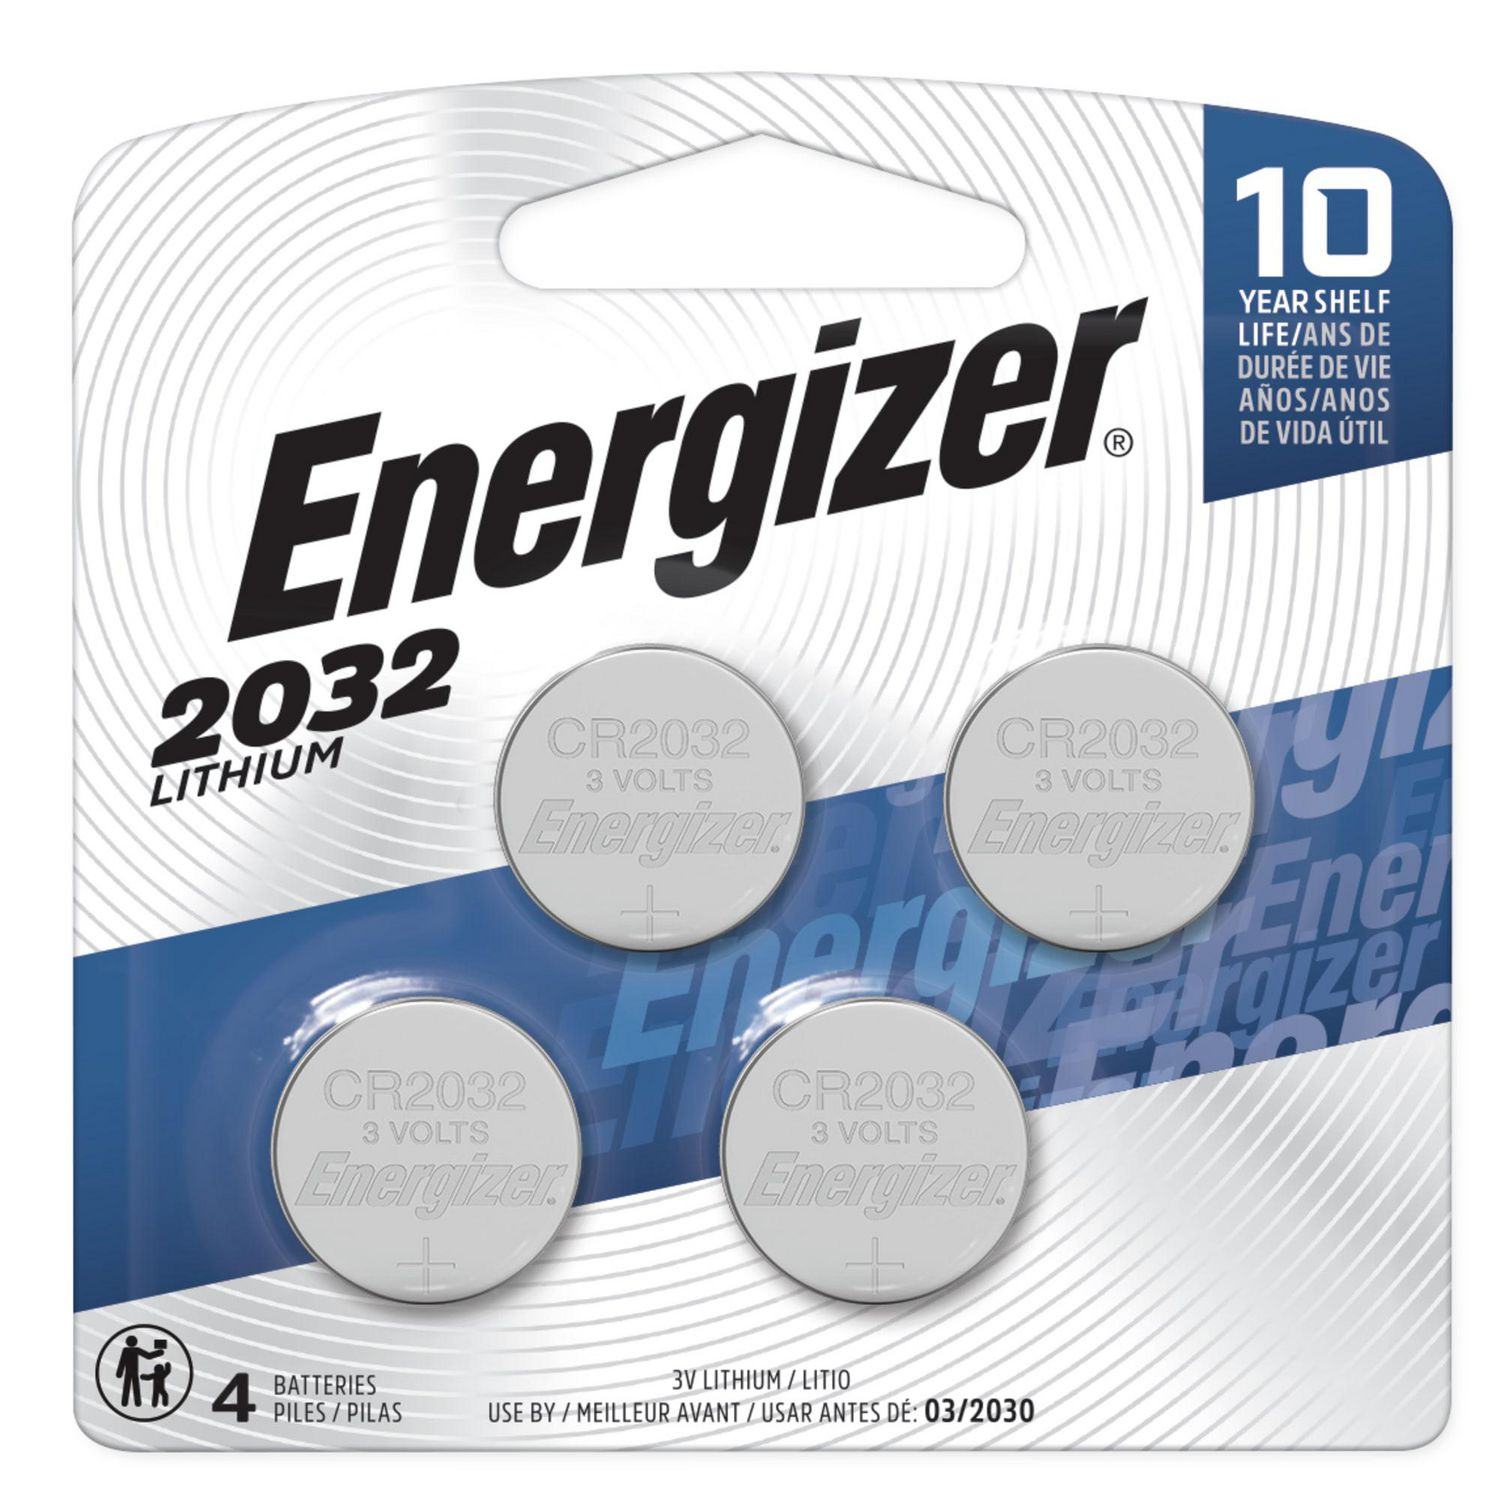 Batterie Cr2032 Energizer Coin Lithium Battery 2032bp 4